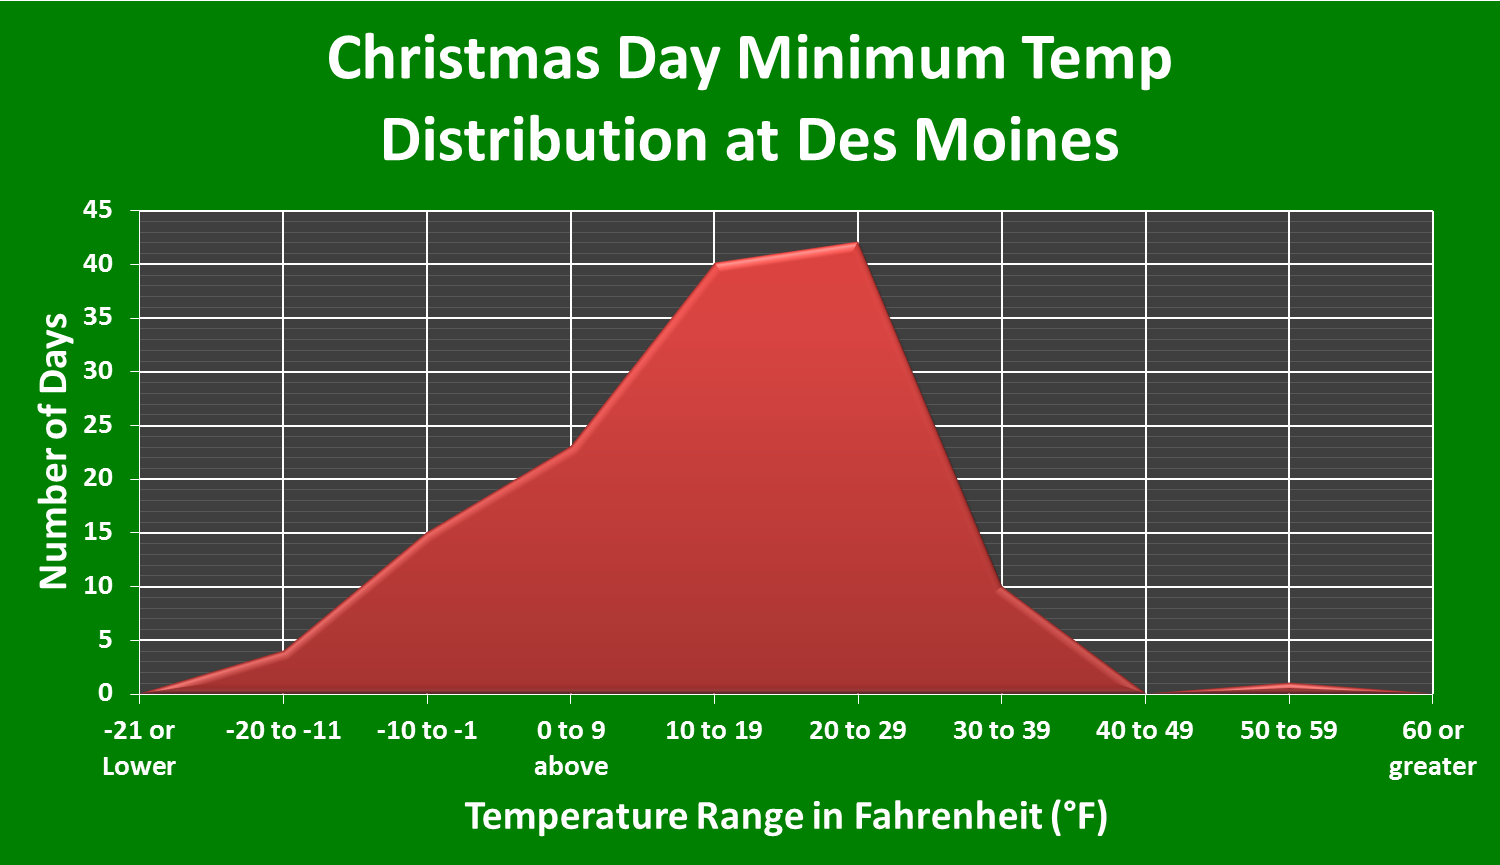 Out of 136 Years of Records at Des Moines